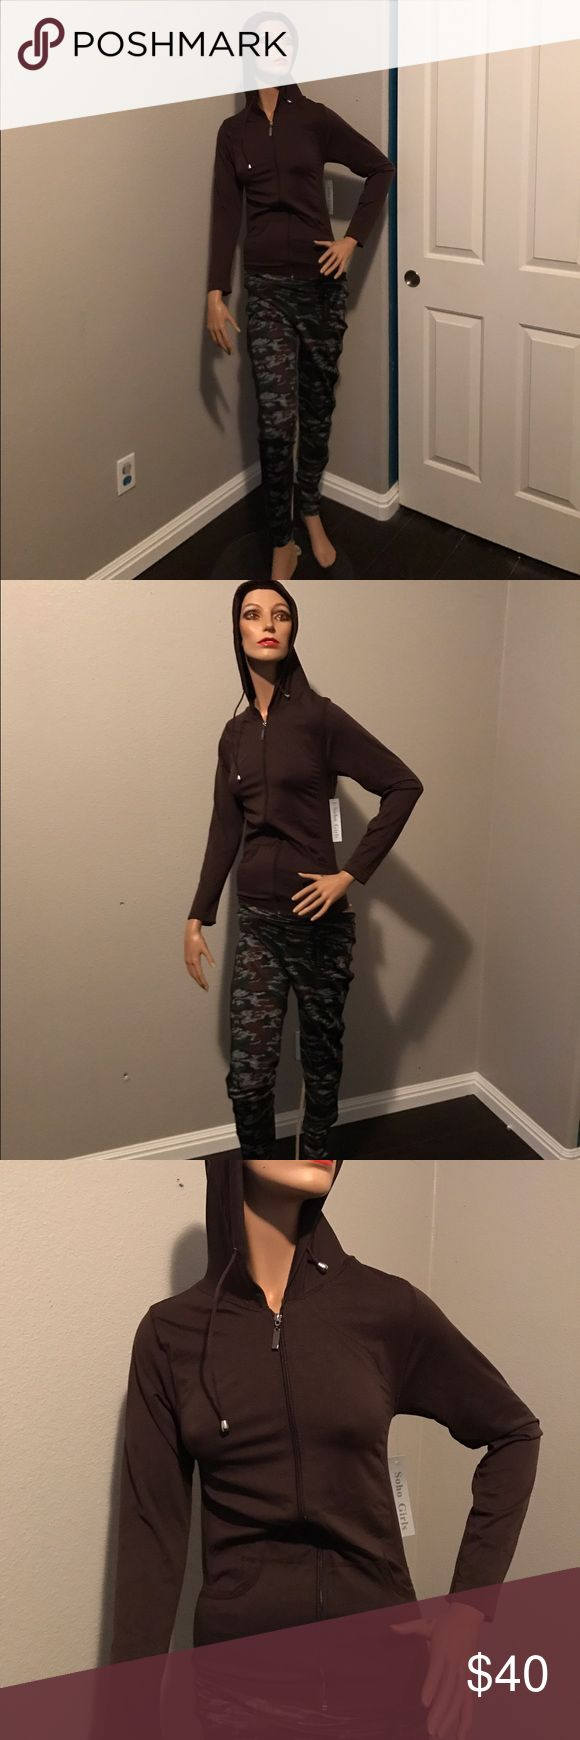 Active Wear set Brown zip up hoodie jacket one size fits all with Army style leggings XL in size very stretchy 👌👖😃 Pants Jumpsuits & Rompers